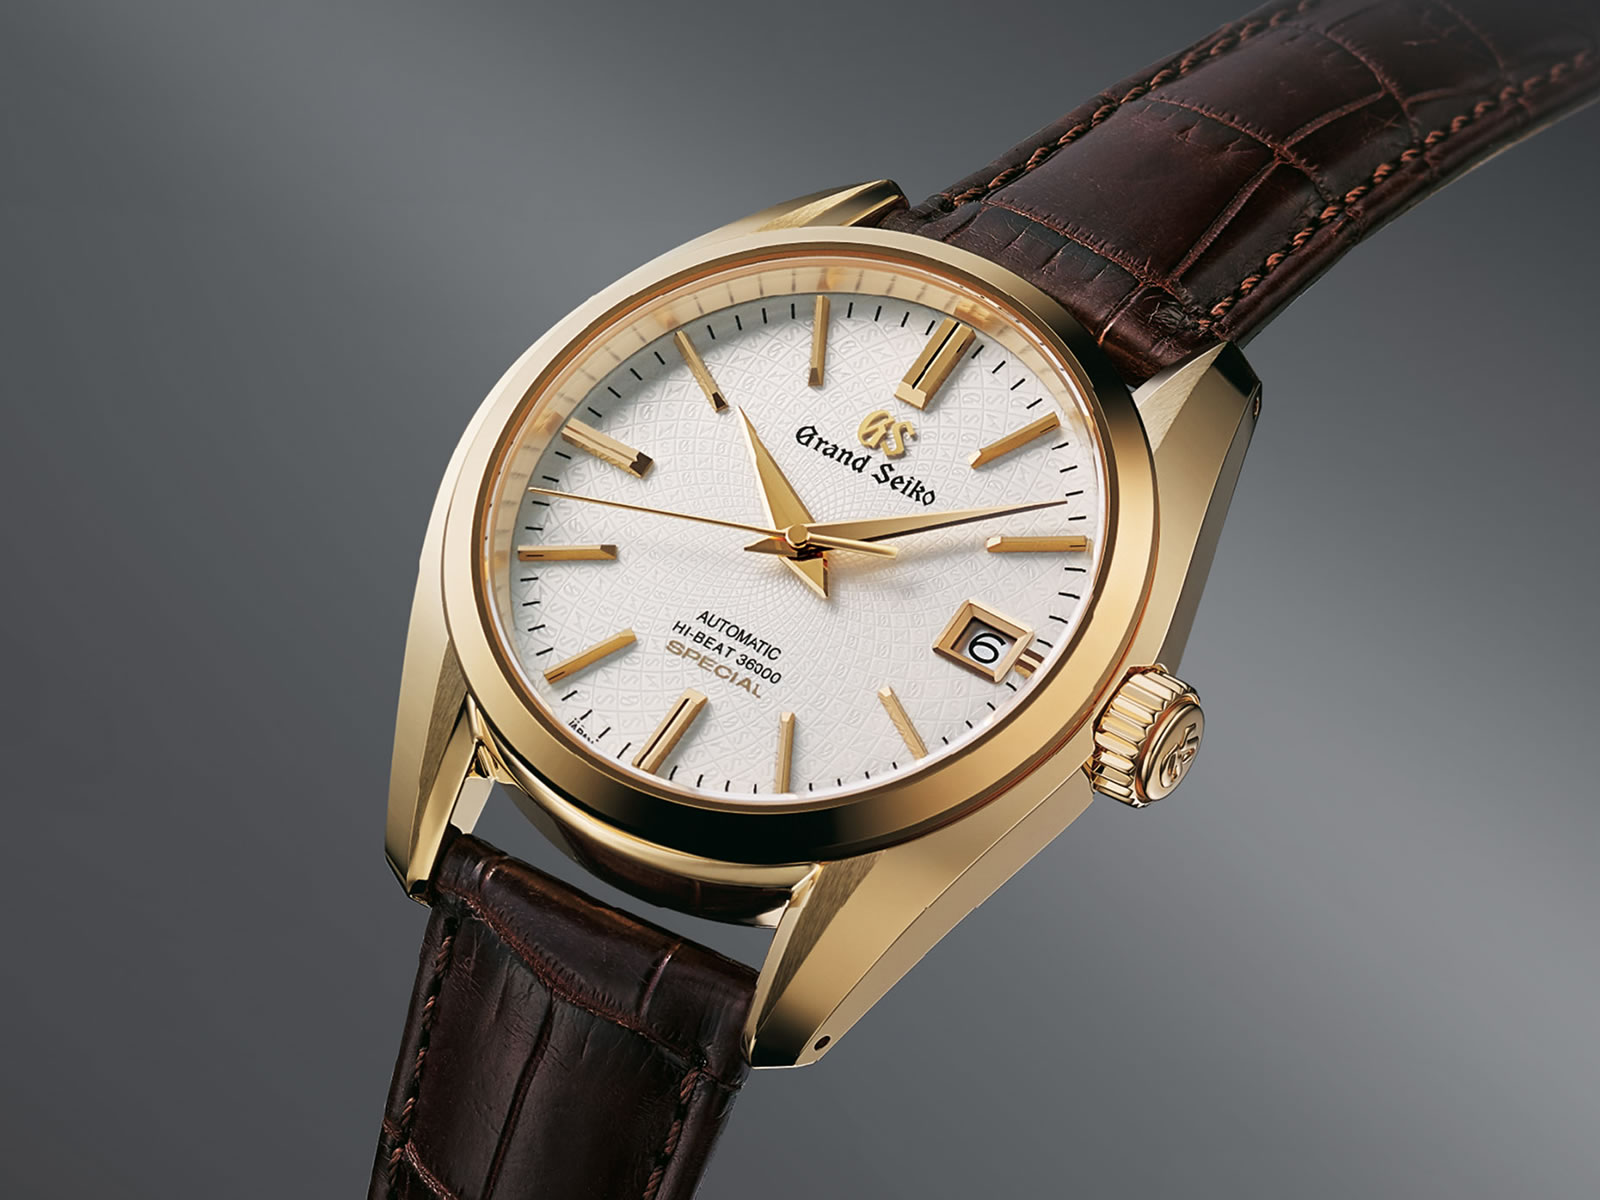 sbgh266-grand-seiko-hi-beat-36000-special-editions-1-.jpg